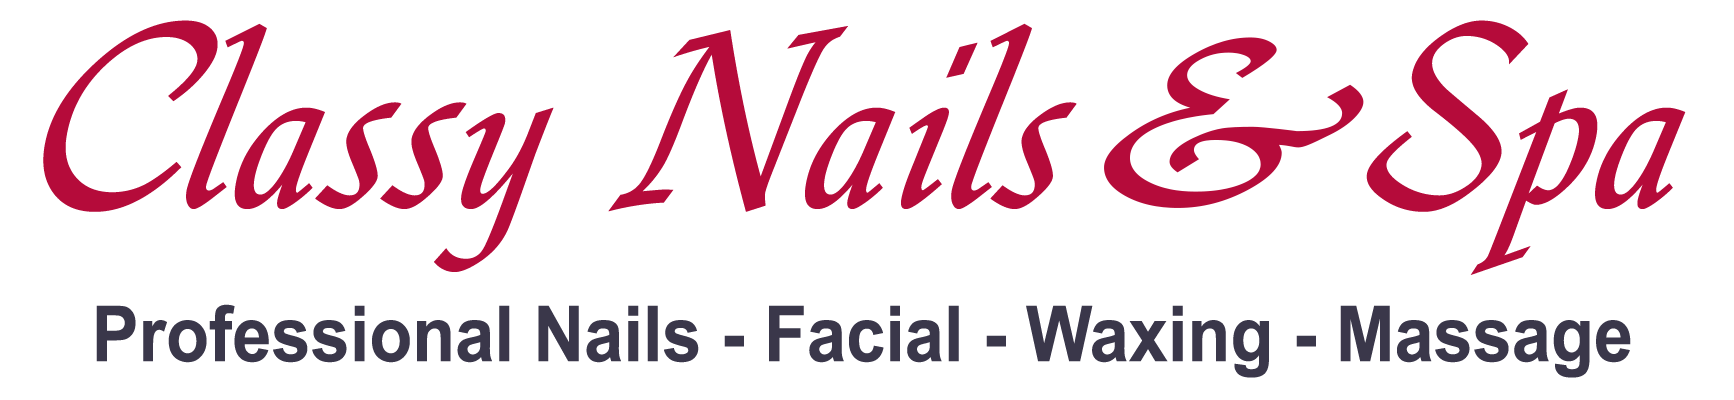 Classy Nails & Spa | Nail salon 21740 in Hagerstown MD